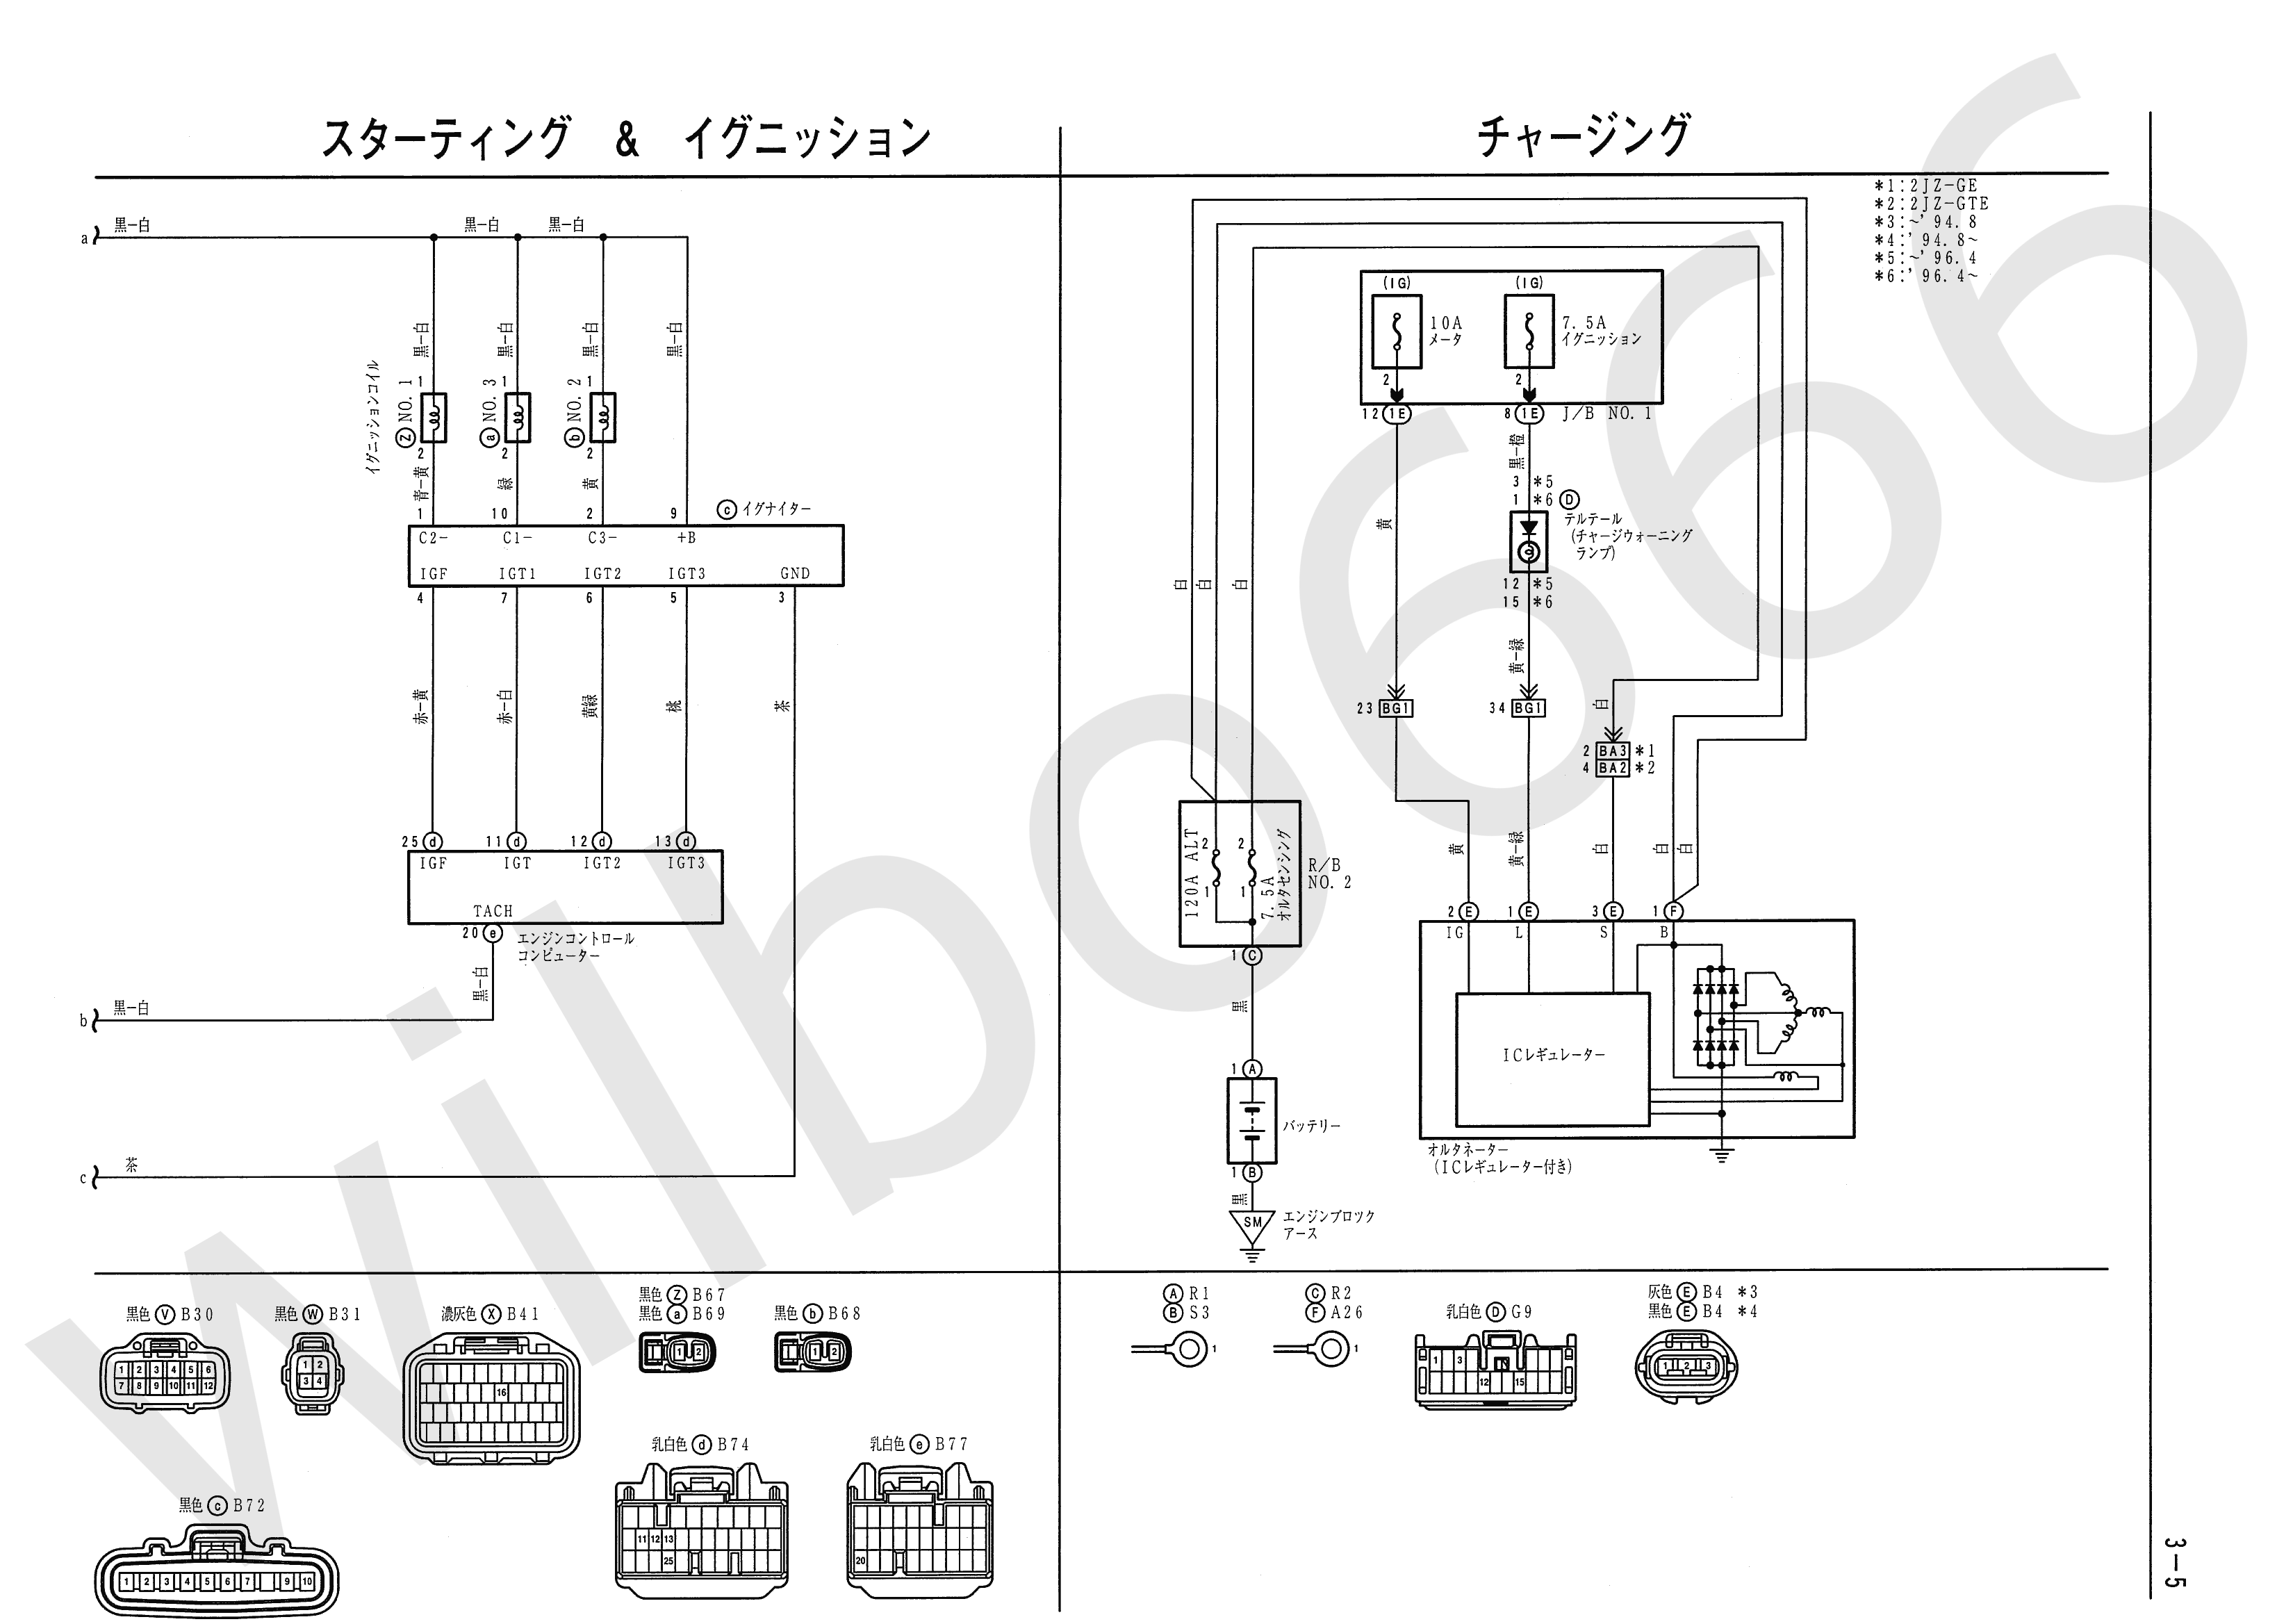 JZA80 Electrical Wiring Diagram 6742505 3 5 wilbo666 2jz gte vvti jza80 supra engine wiring 2jz wiring diagram at cita.asia